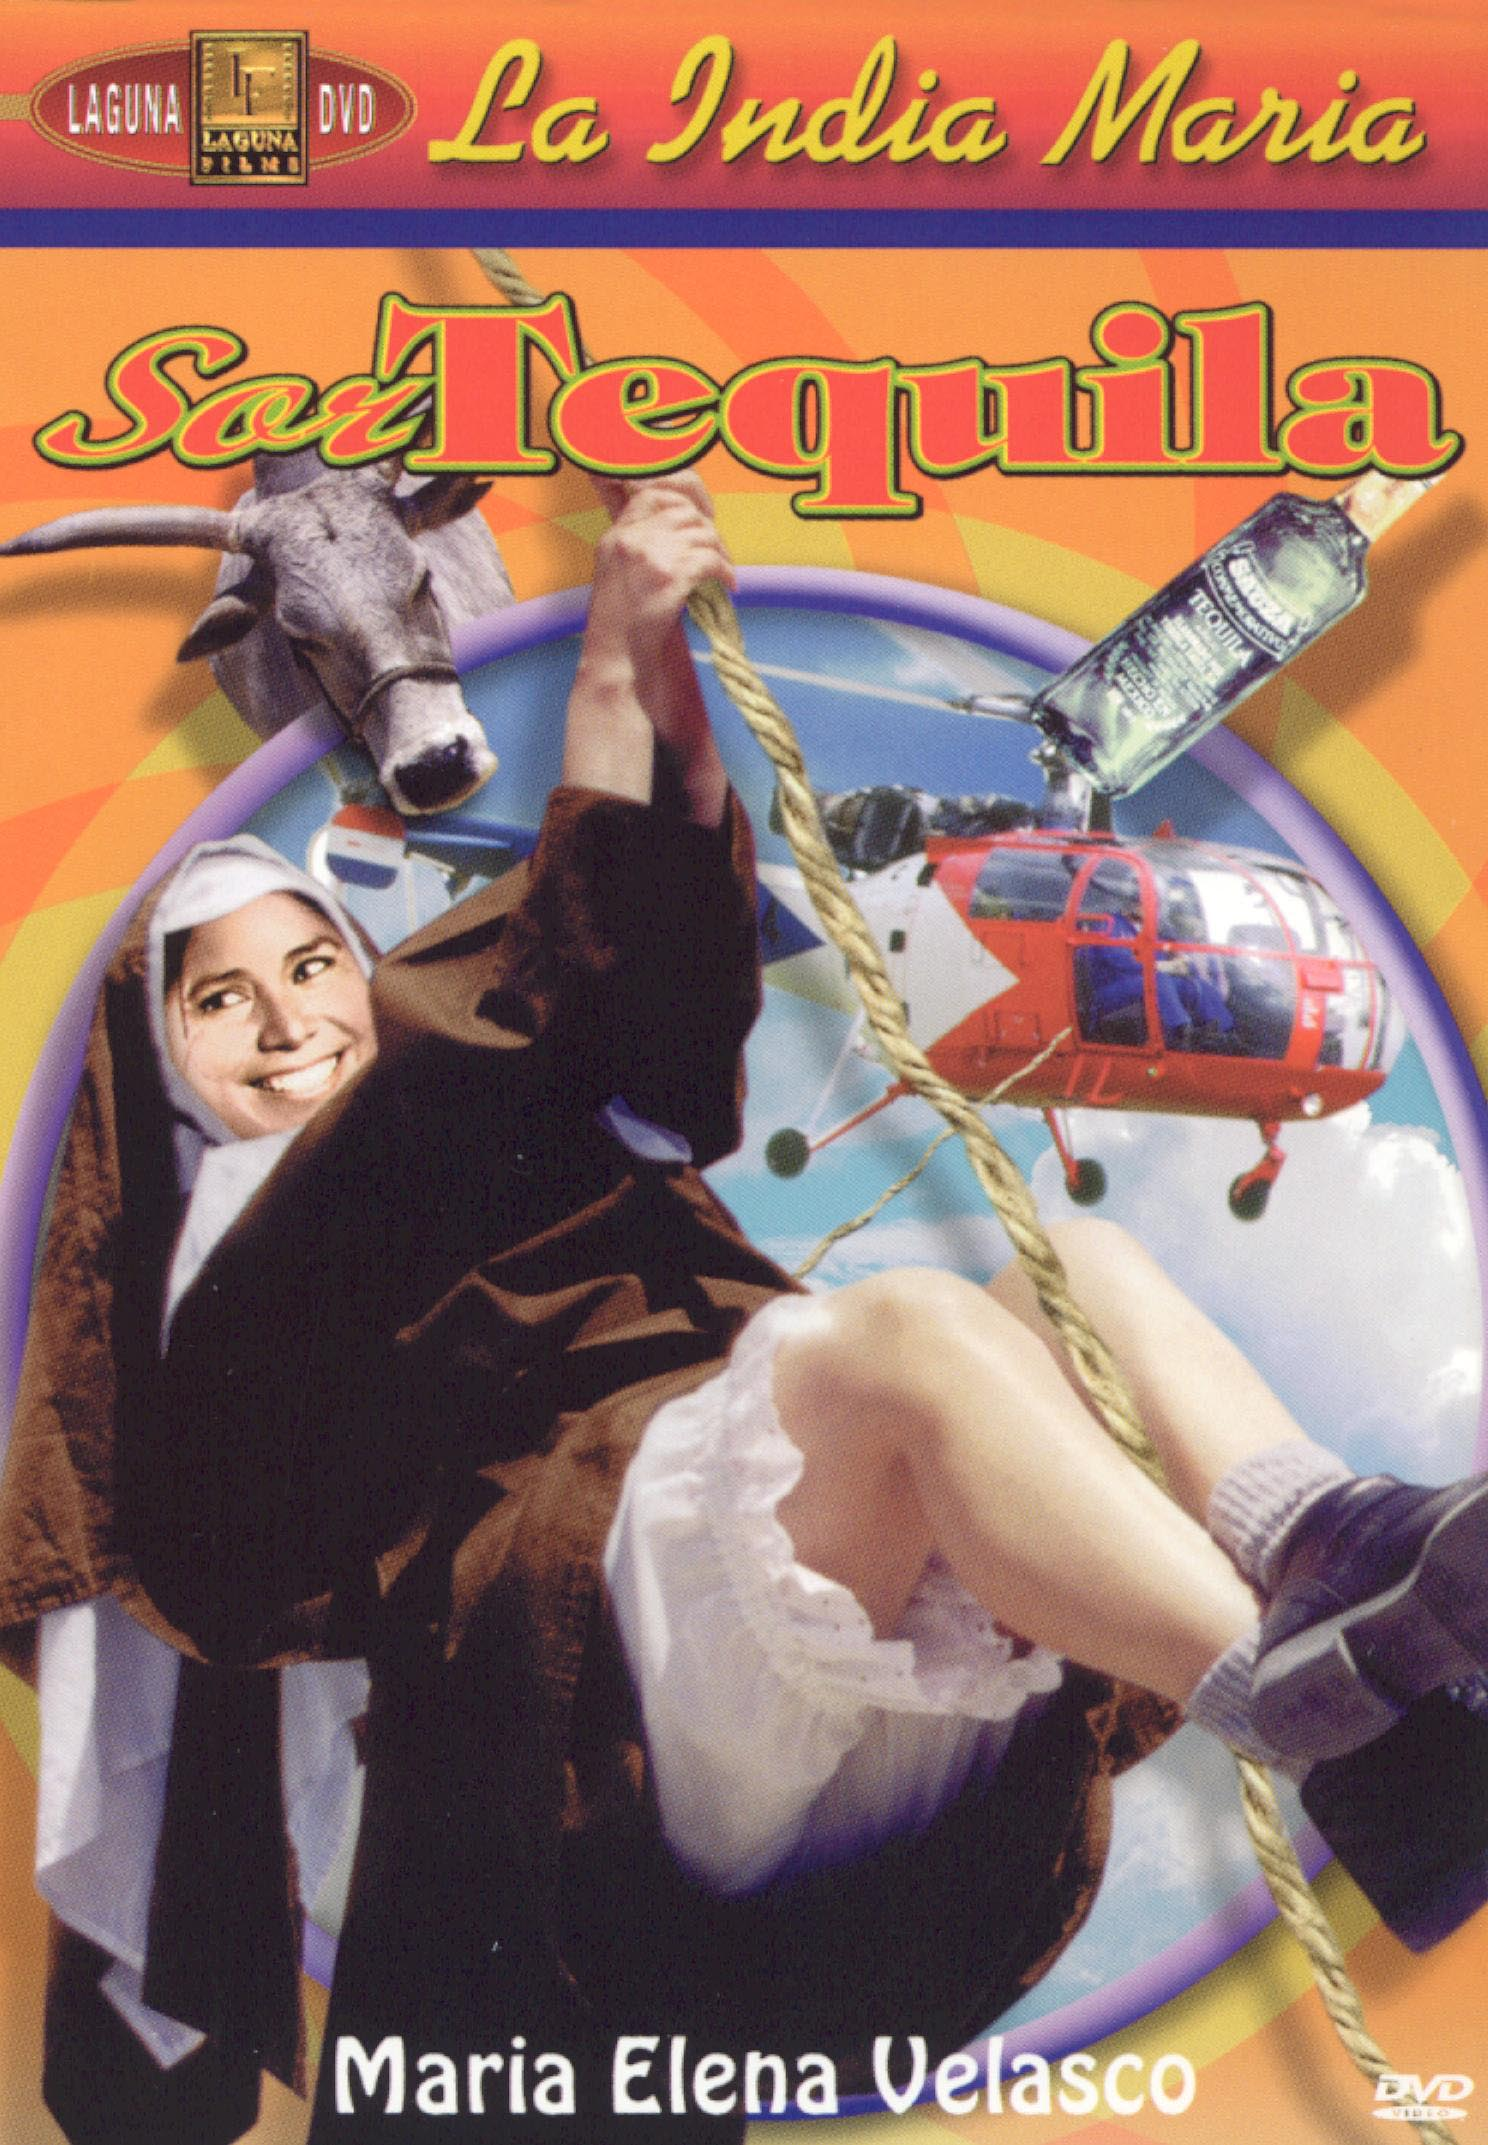 Sor Tequila 1980 - Synopsis Characteristics Moods